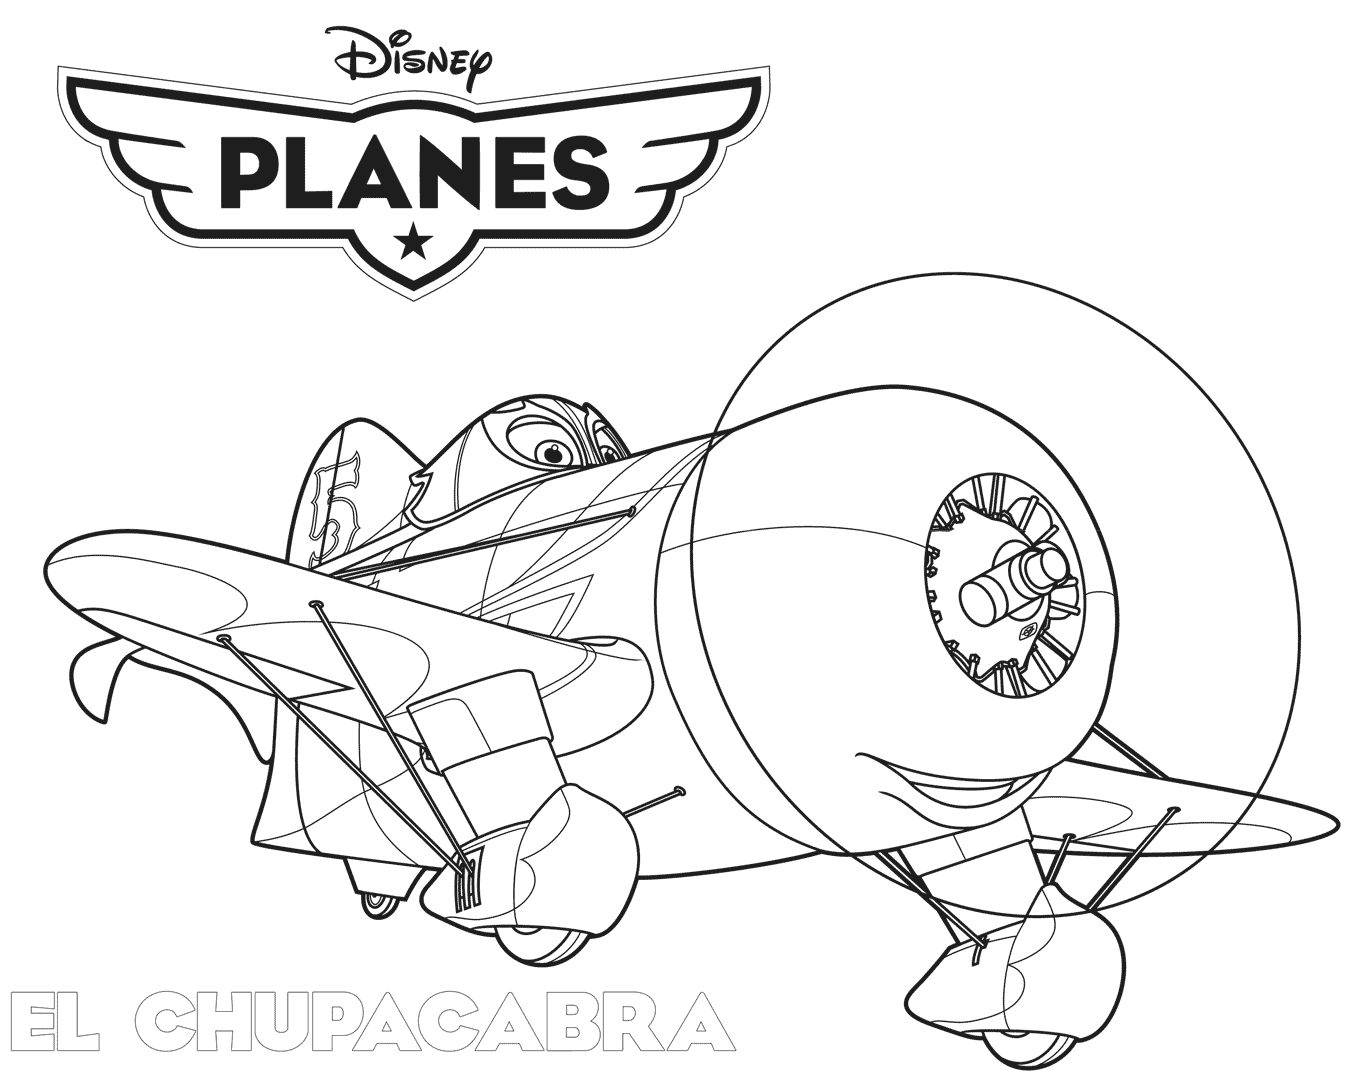 Planes Coloring Pages - Best Coloring Pages For Kids | 1087x1363